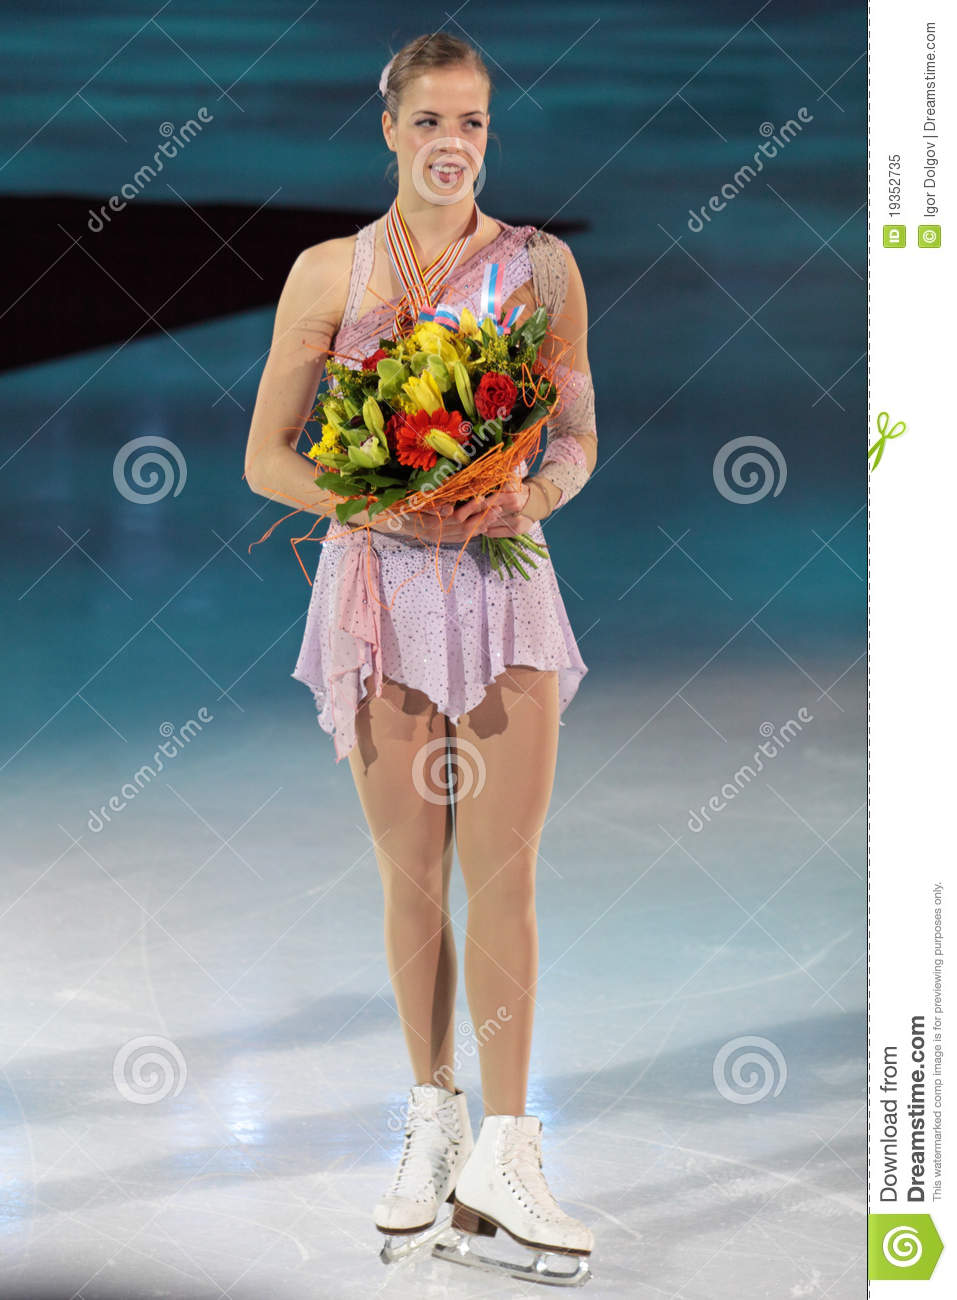 Campeonato do mundo na figura patinagem 2011